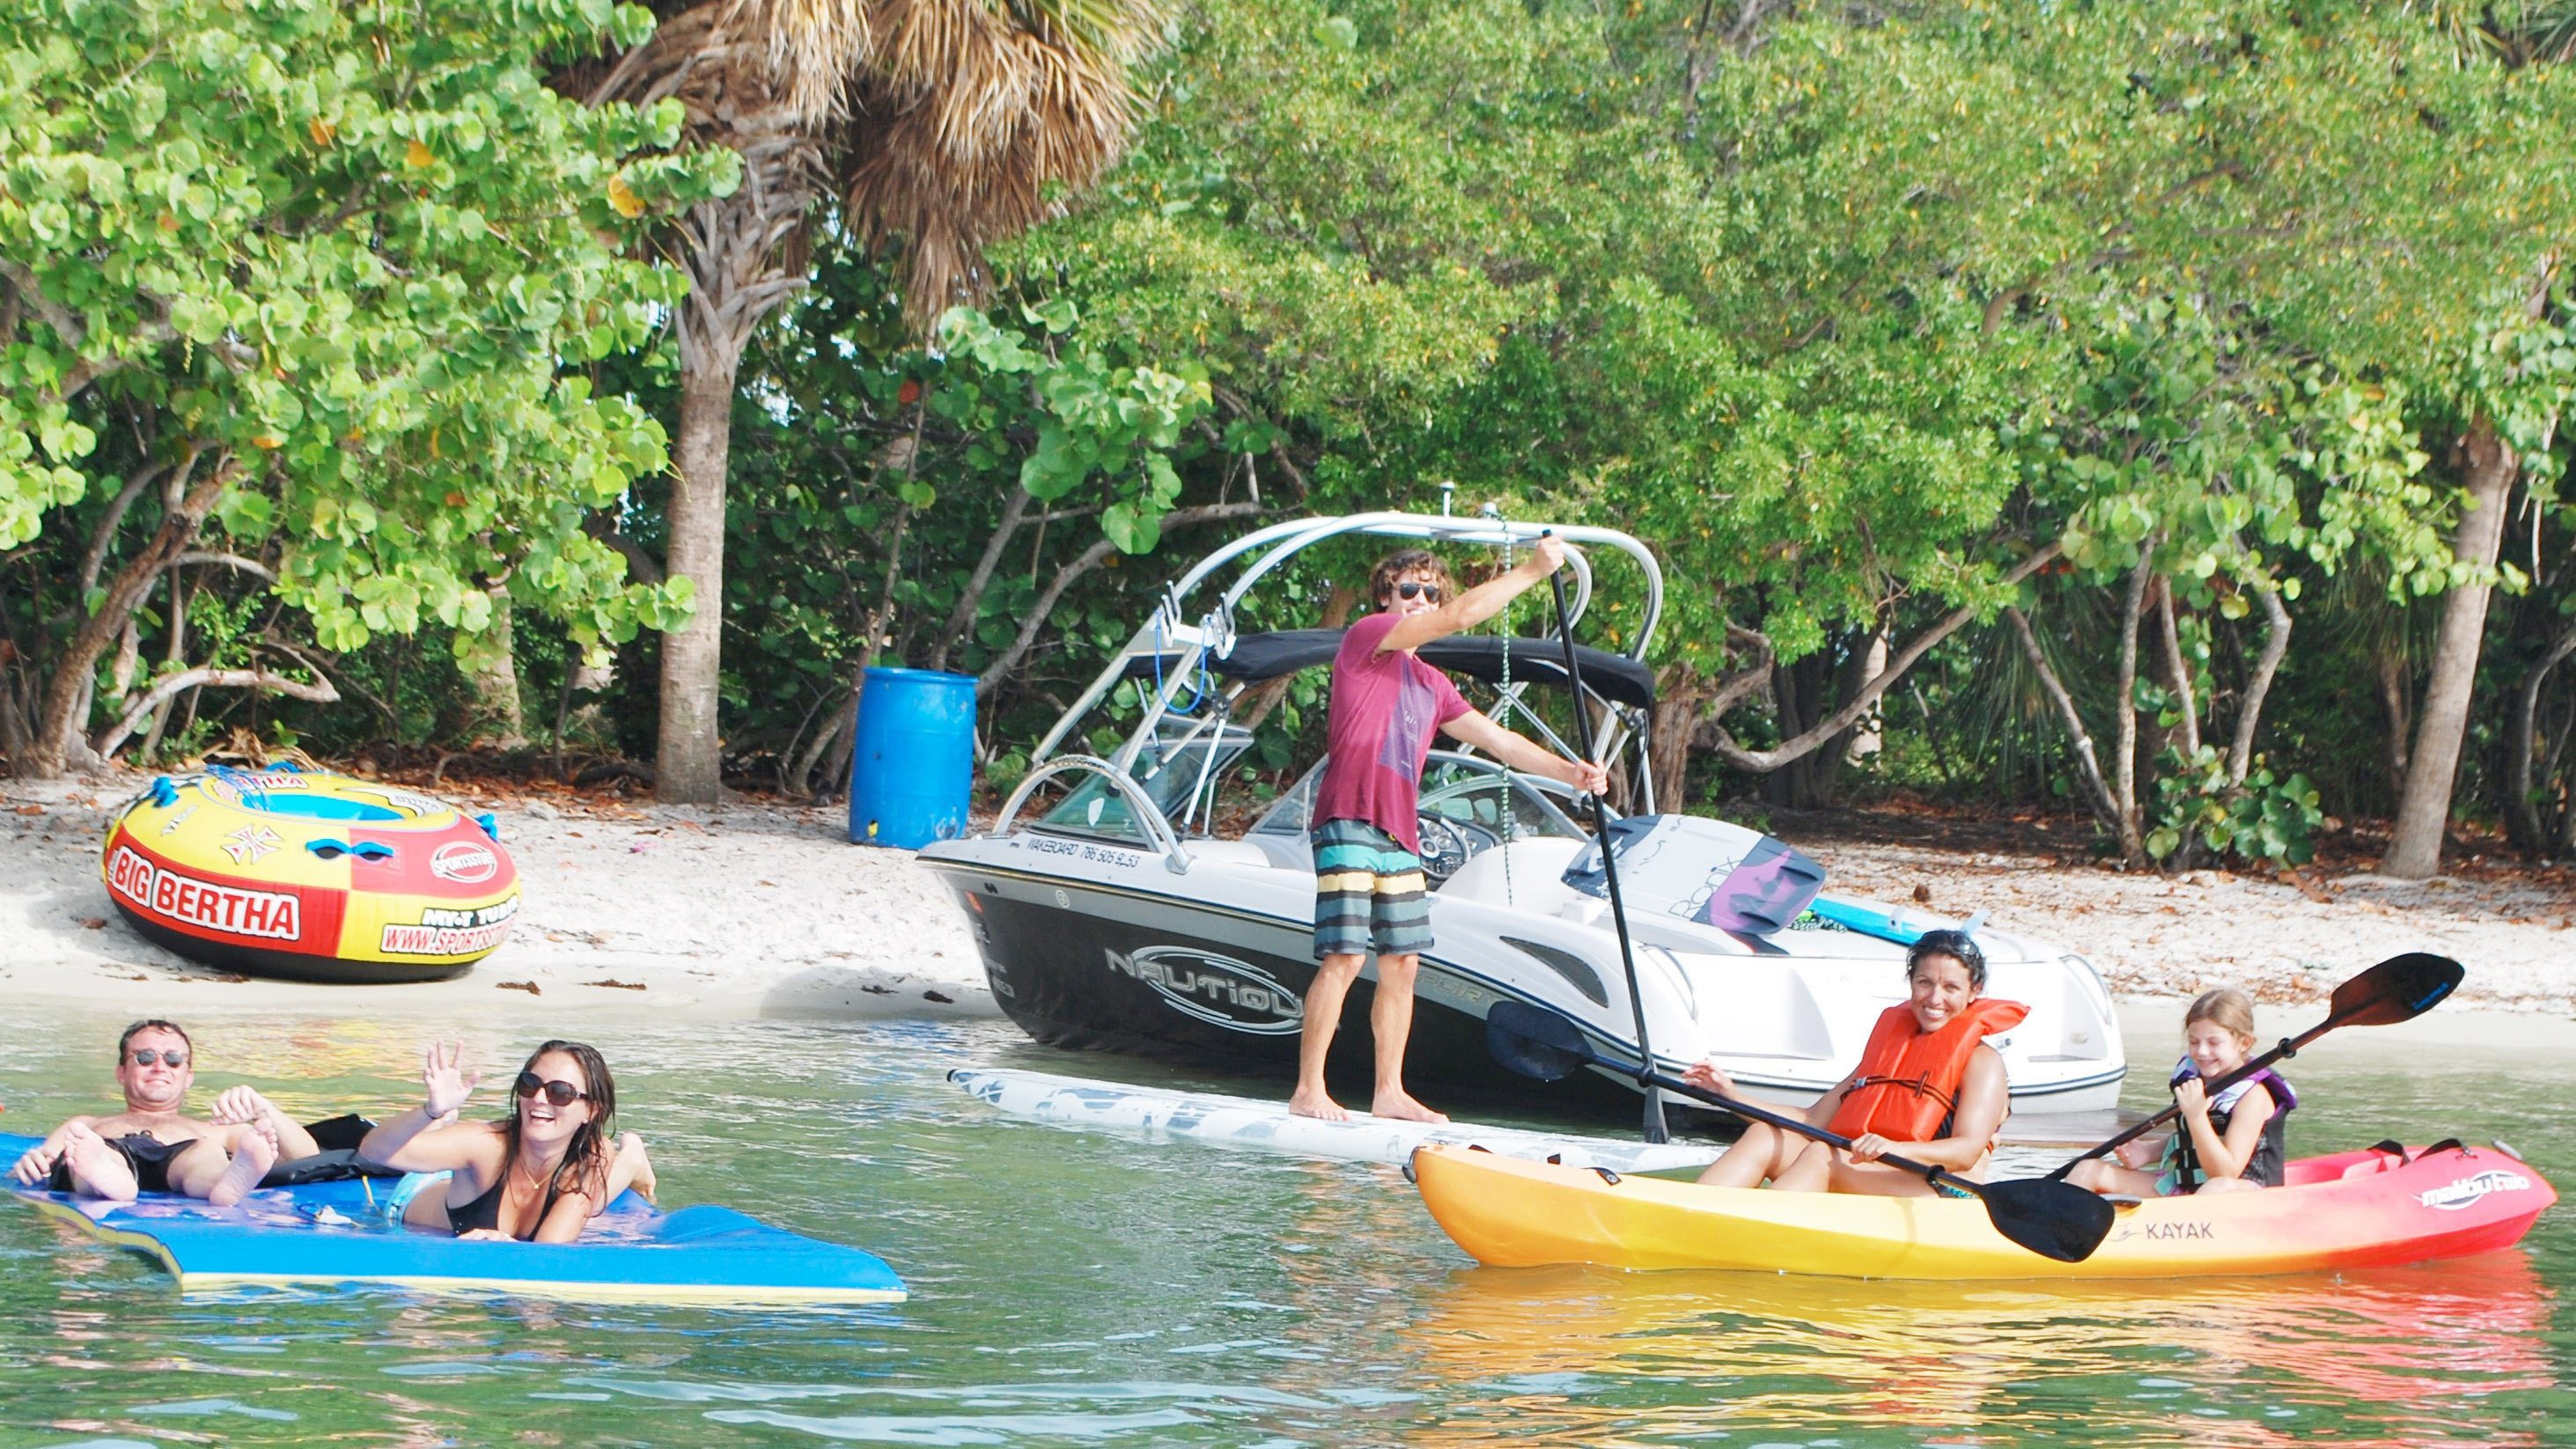 Watersport in Miami